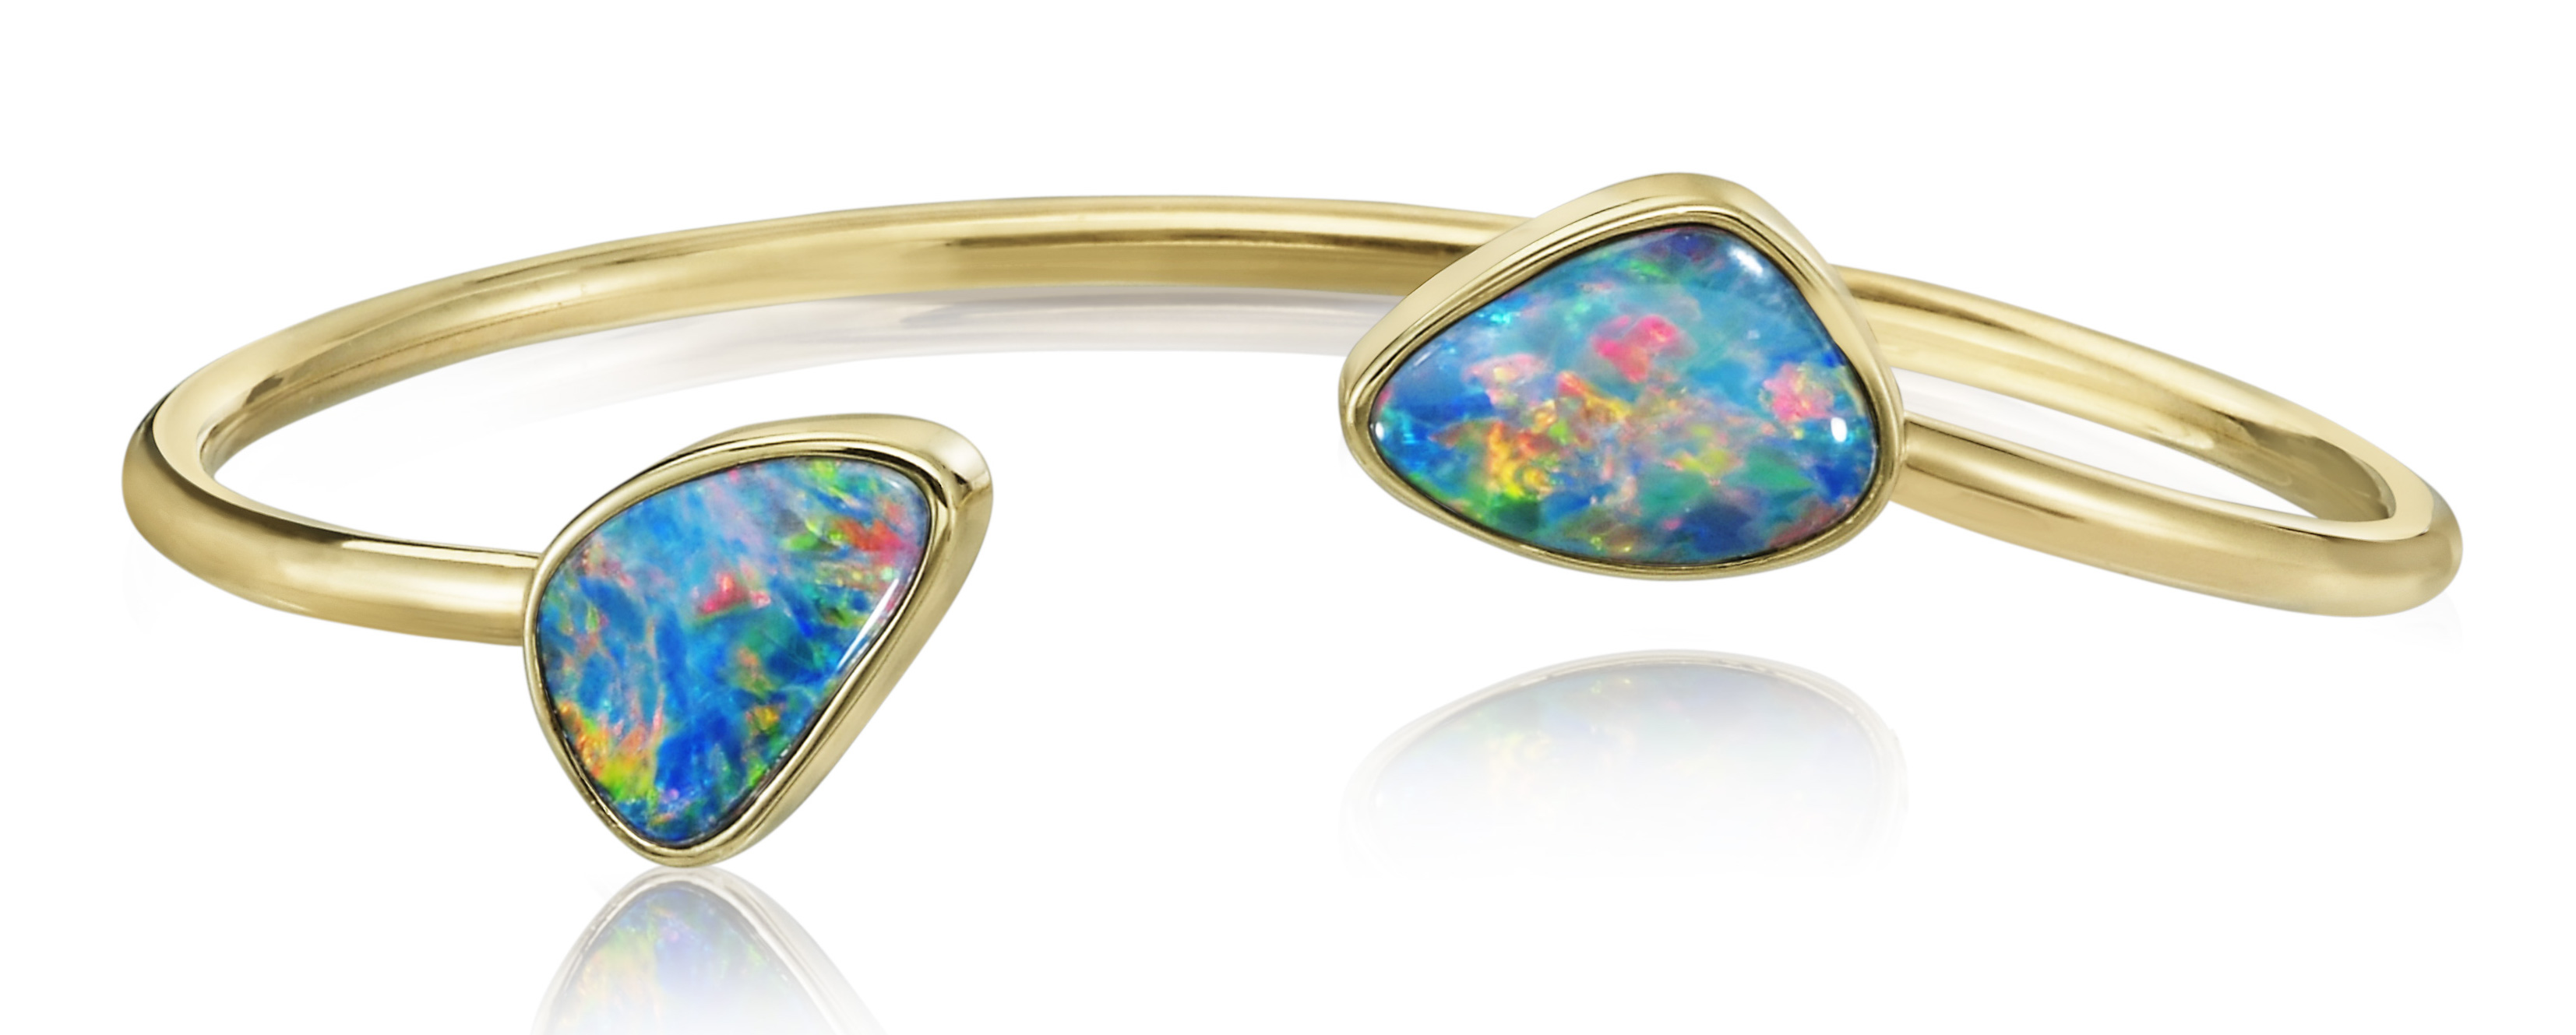 Parlé Jewelry Design opal bracelet | JCK On Your Market